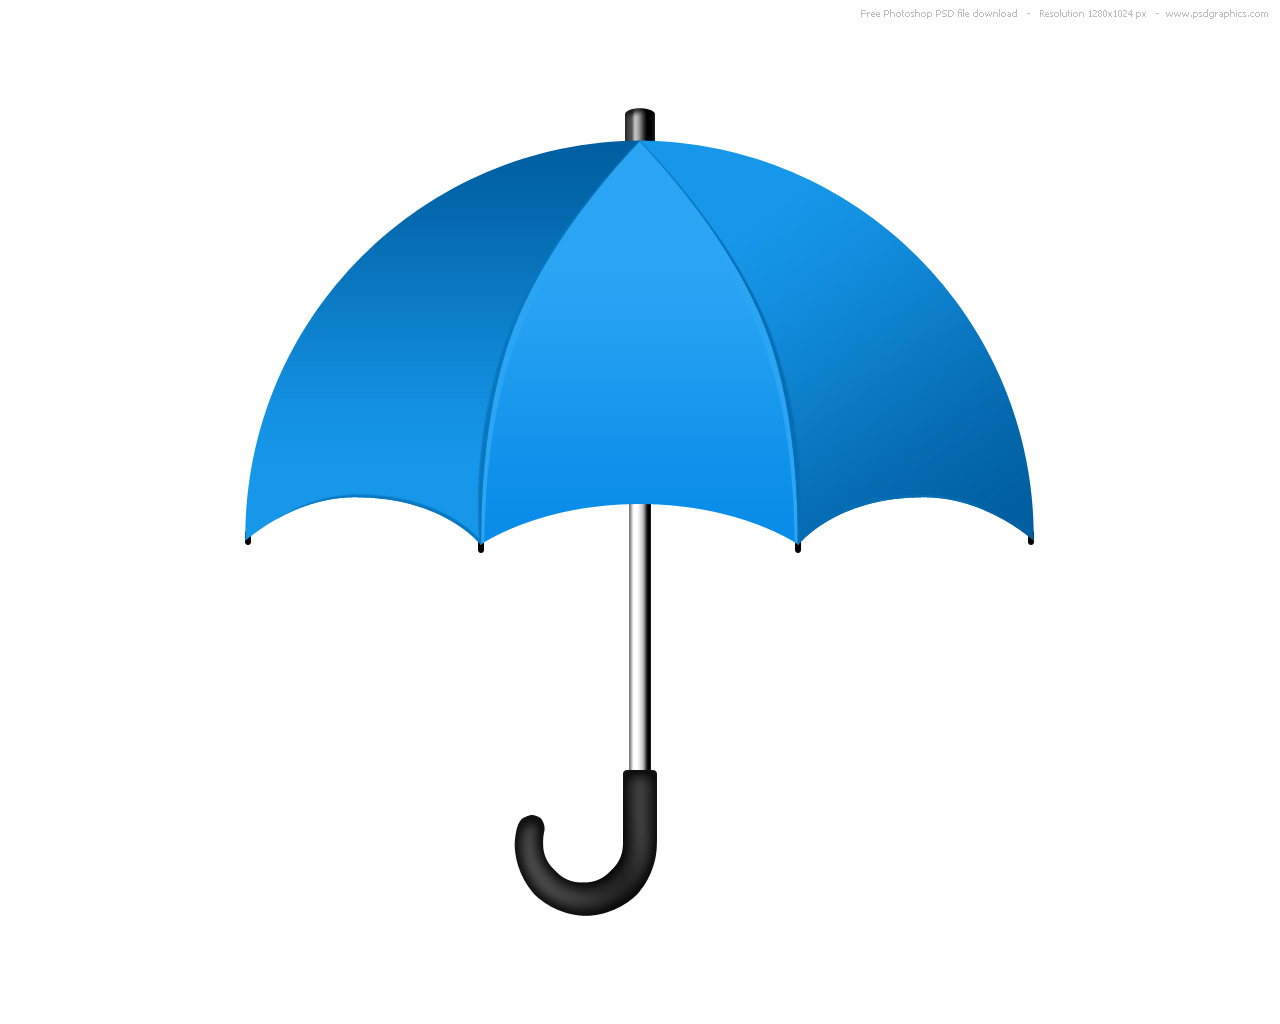 Umbrella Backgrounds on Wallpapers Vista